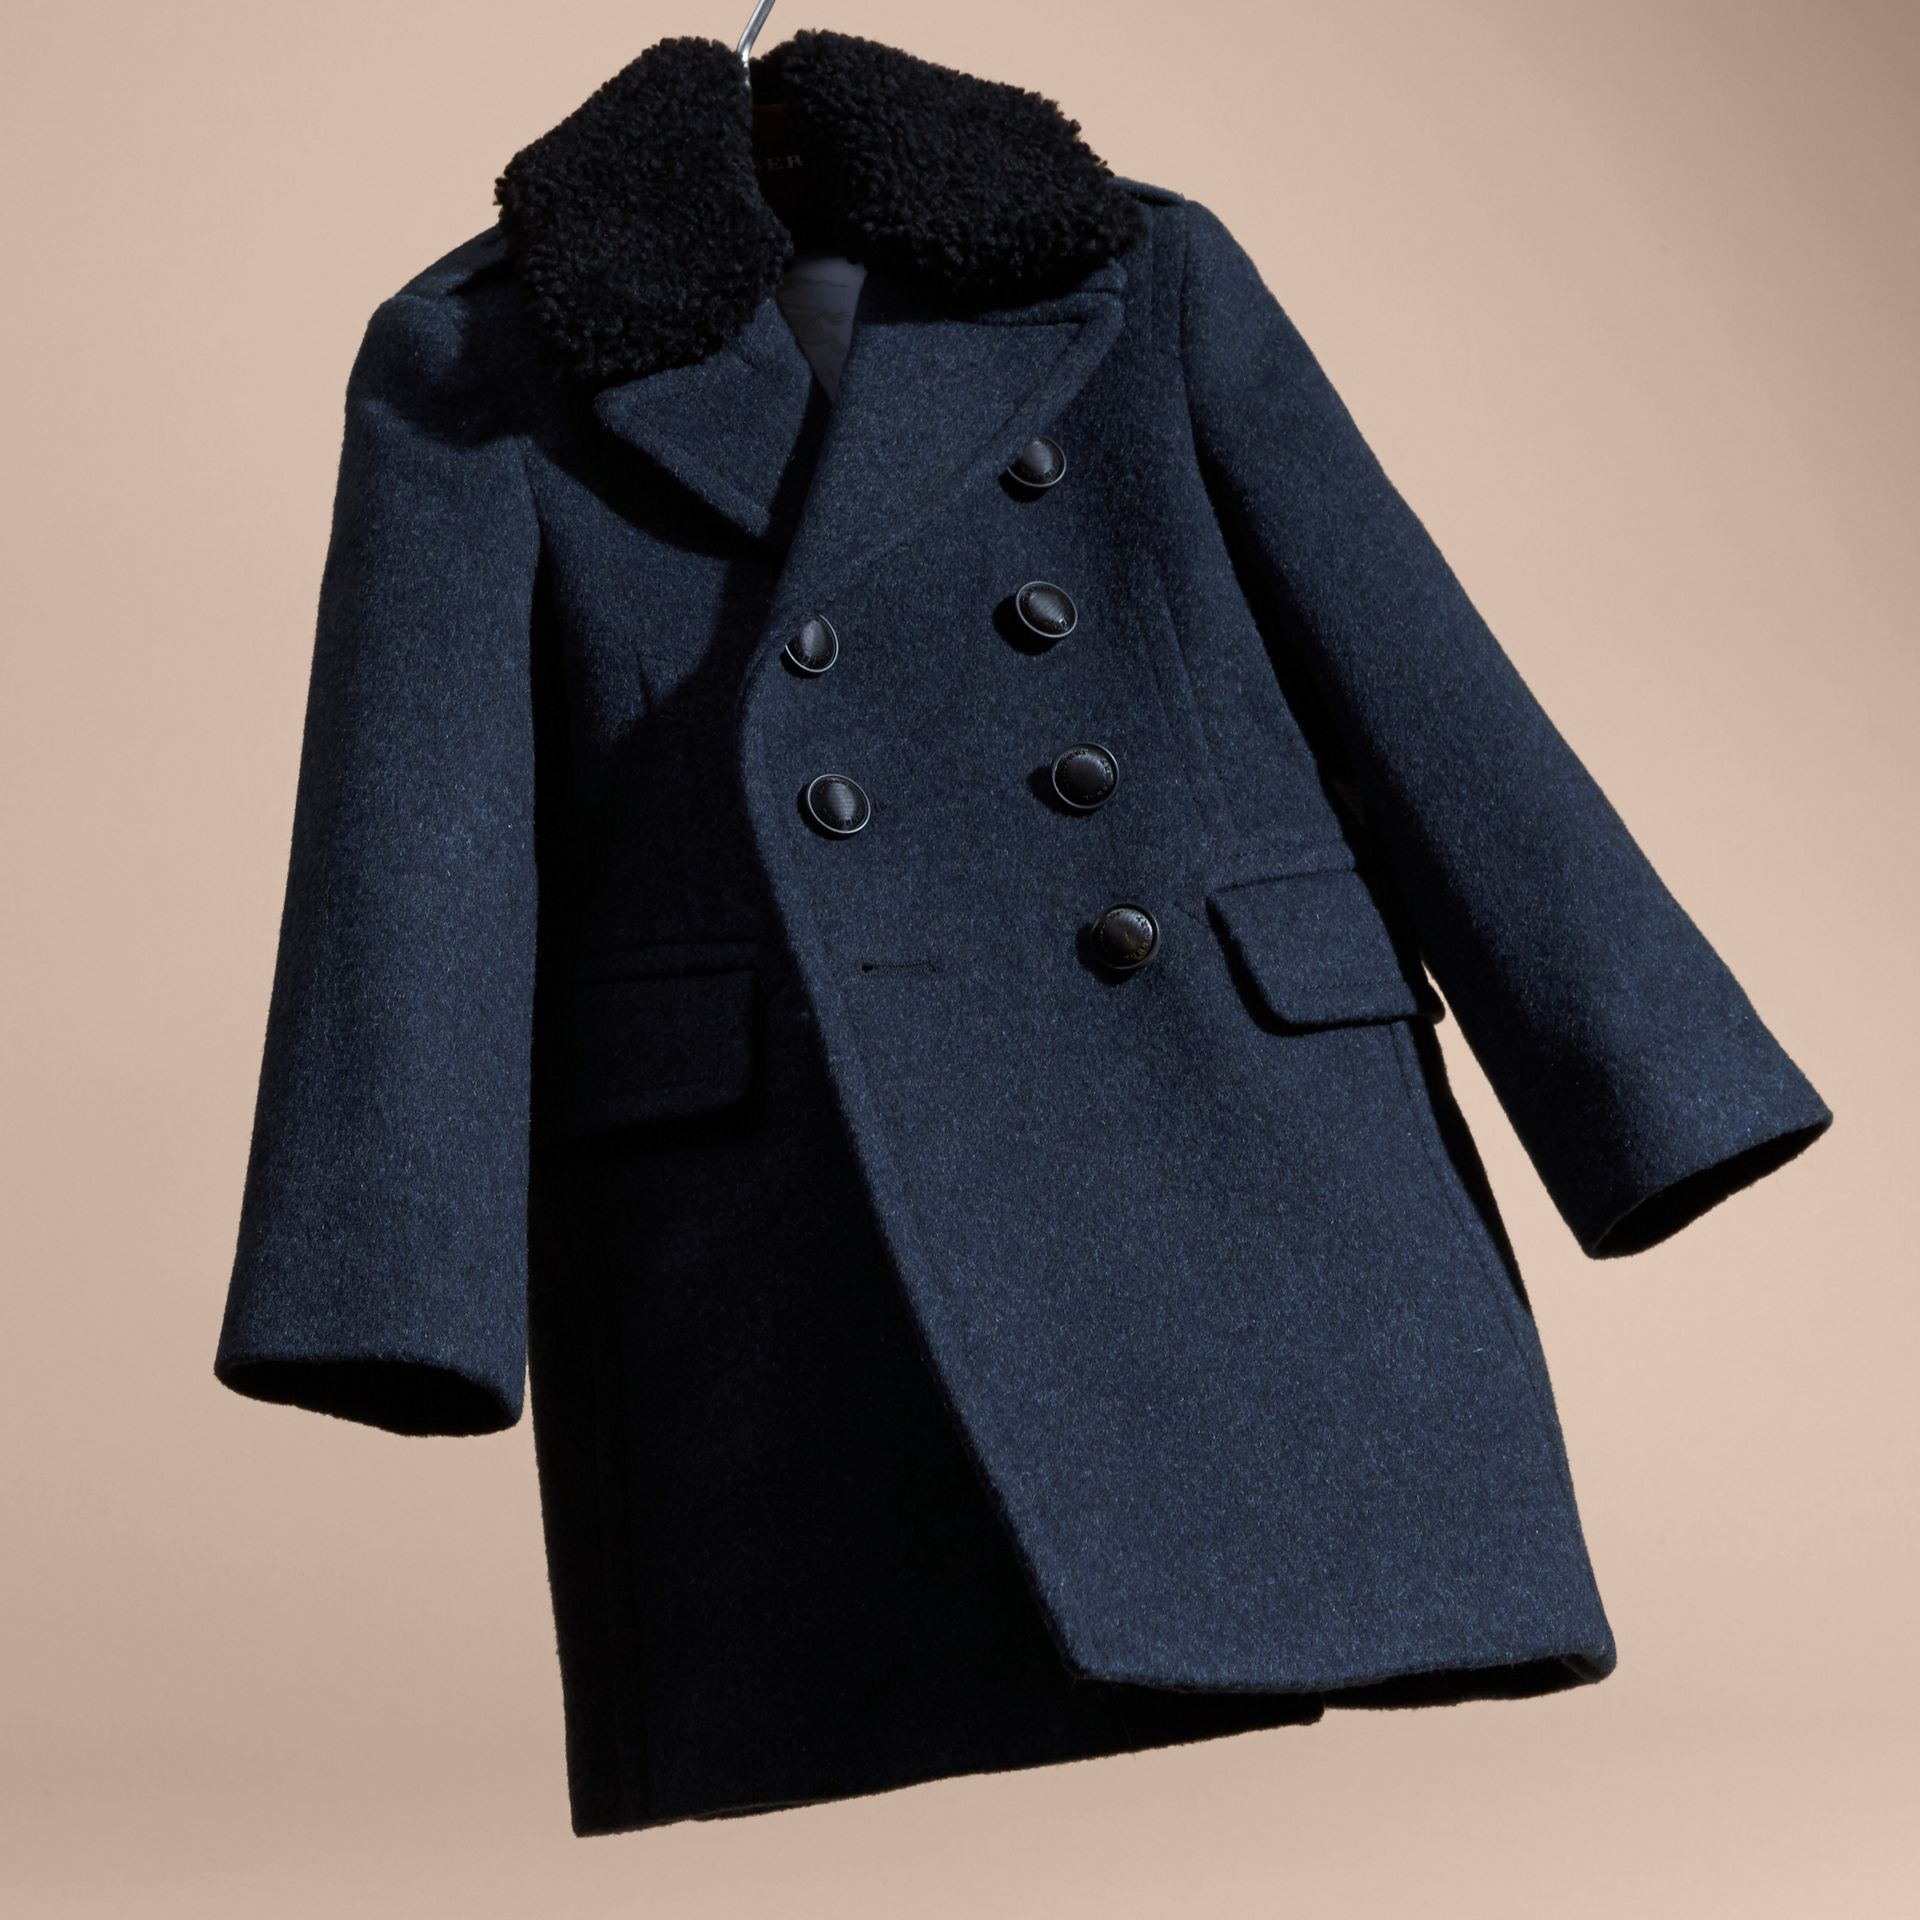 Airforce blue Technical Wool Coat with Detachable Shearling Collar - gallery image 5